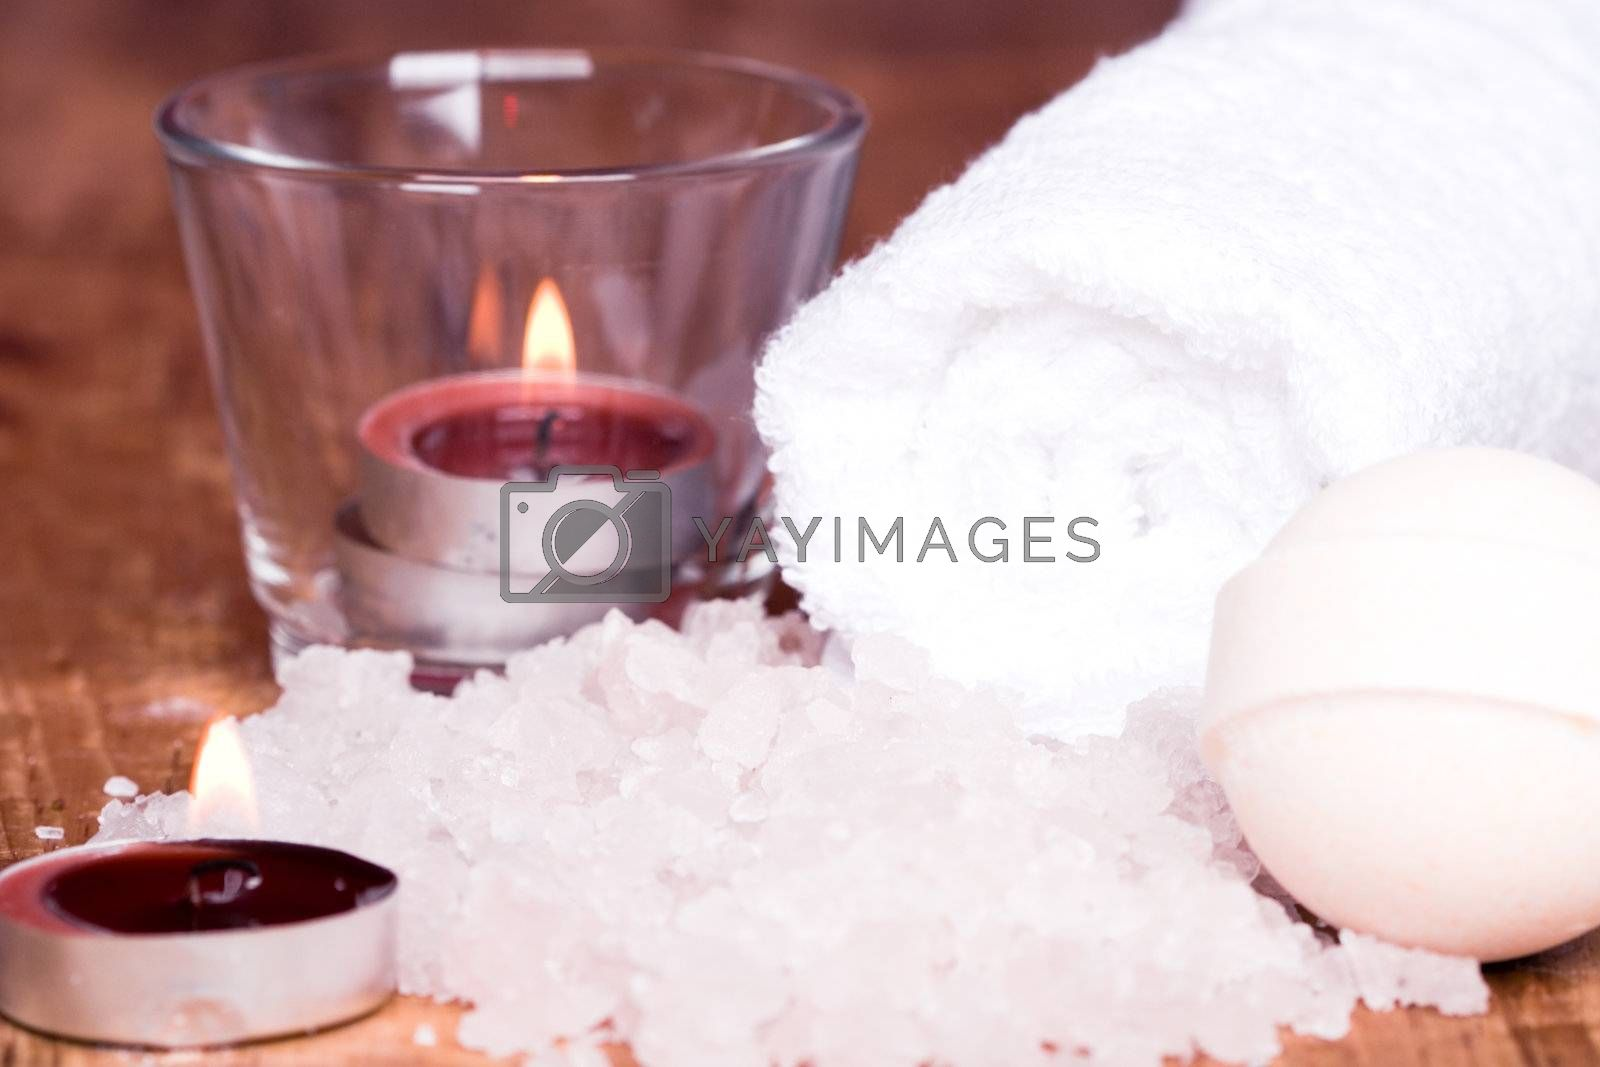 spa products (towel, salt, candles, ball) on wooden background